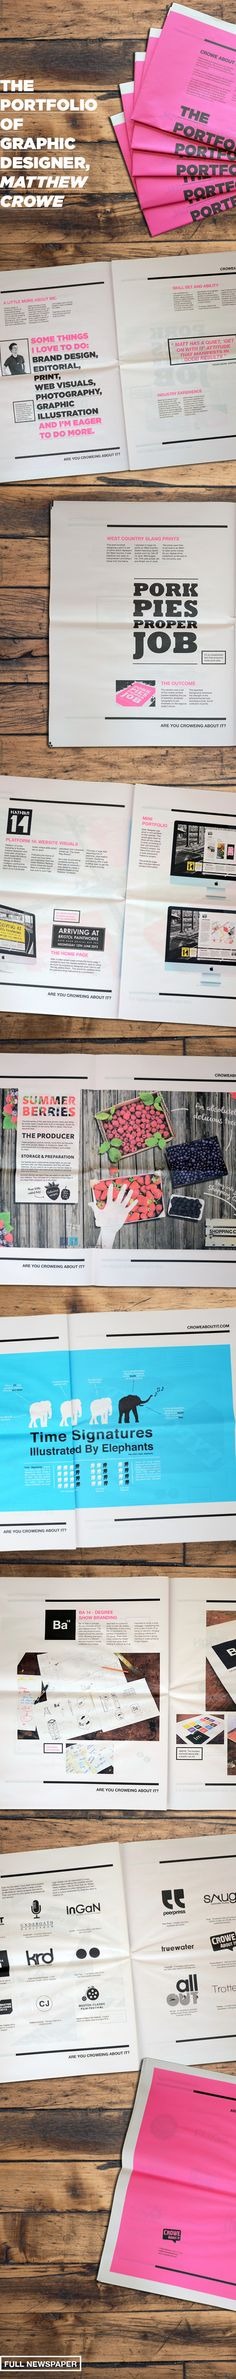 Newspaper Portfolio - Crowe About It by Matthew Crowe, via Behance